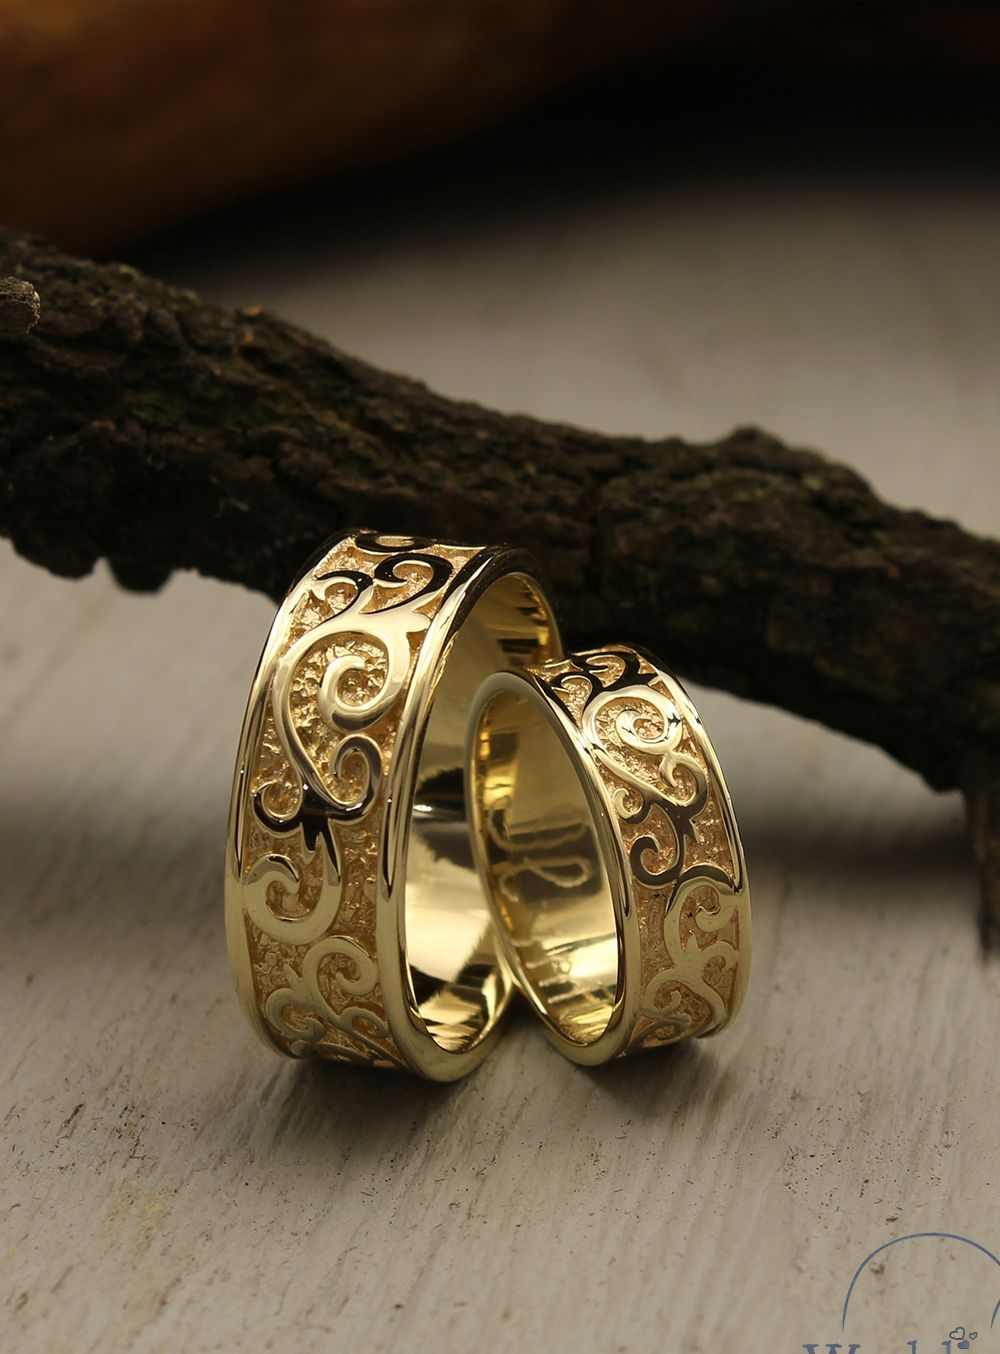 Unusual Couple Wedding Bands Set Made In 14k Solid Yellow Gold Unique Vine Relief Wedding Rings His Her Matching Bands Anniversary Gift In 2020 14k Yellow Gold Wedding Band Yellow Gold